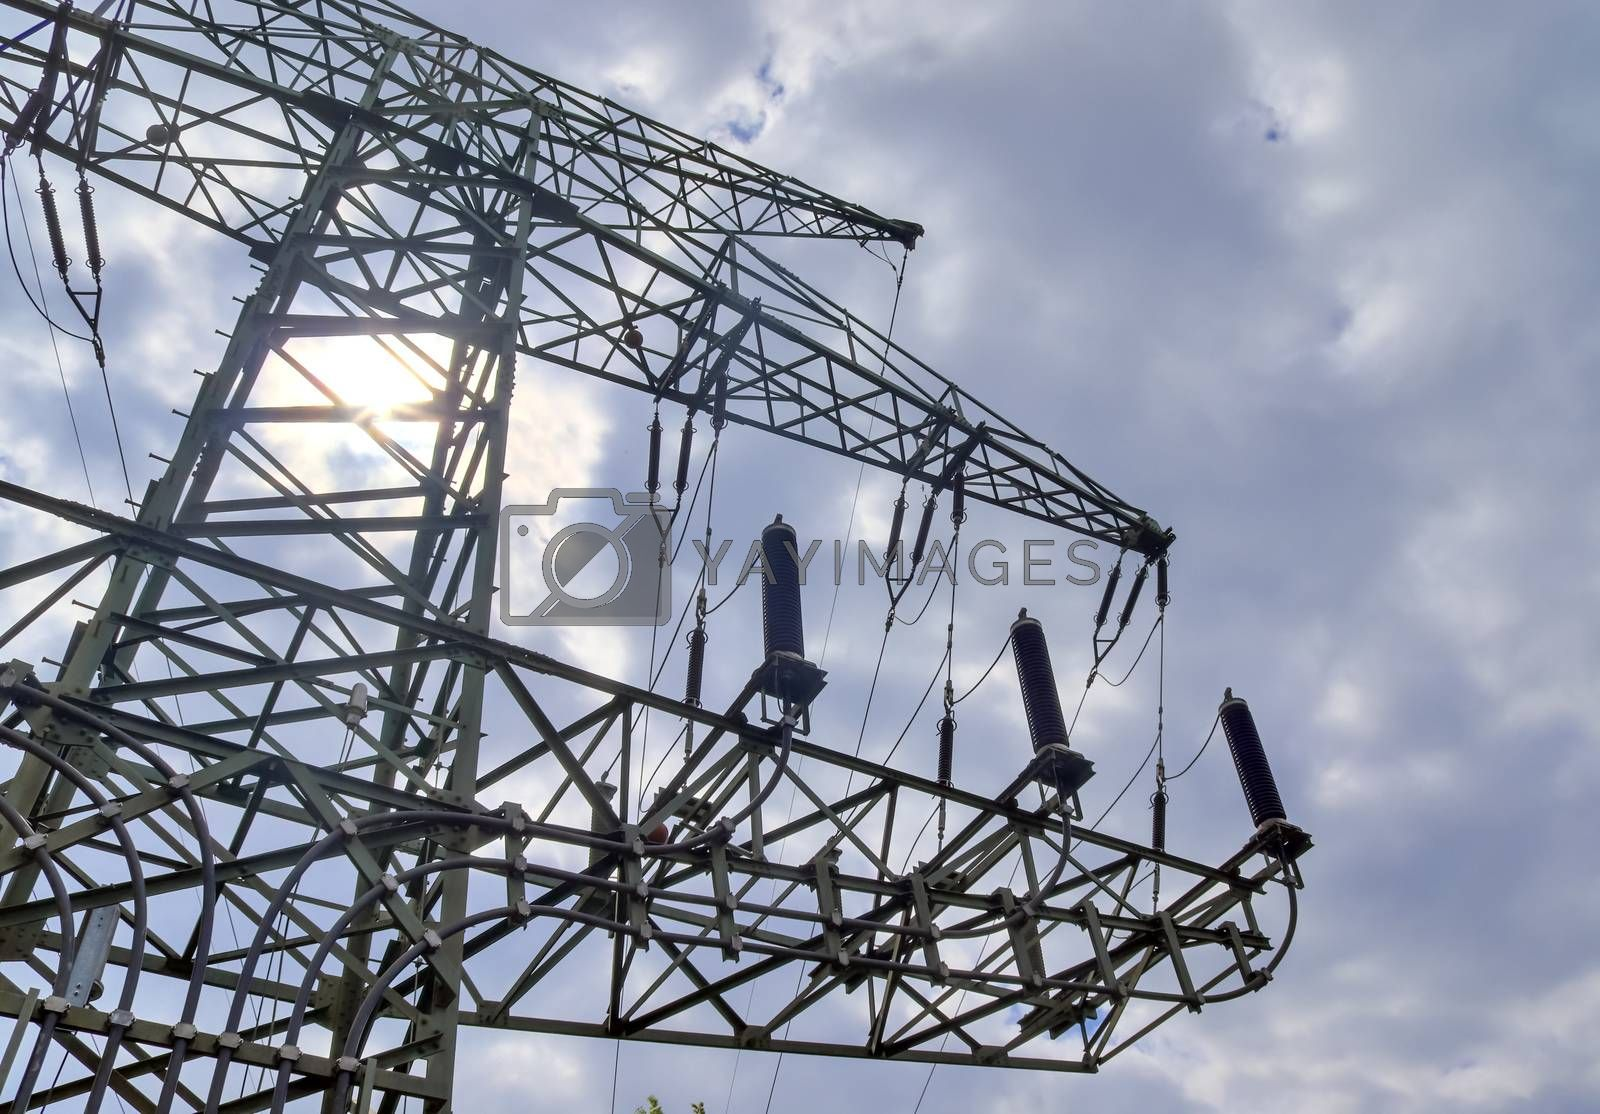 Close up view on a big power pylon transporting electricity in a by MP_foto71